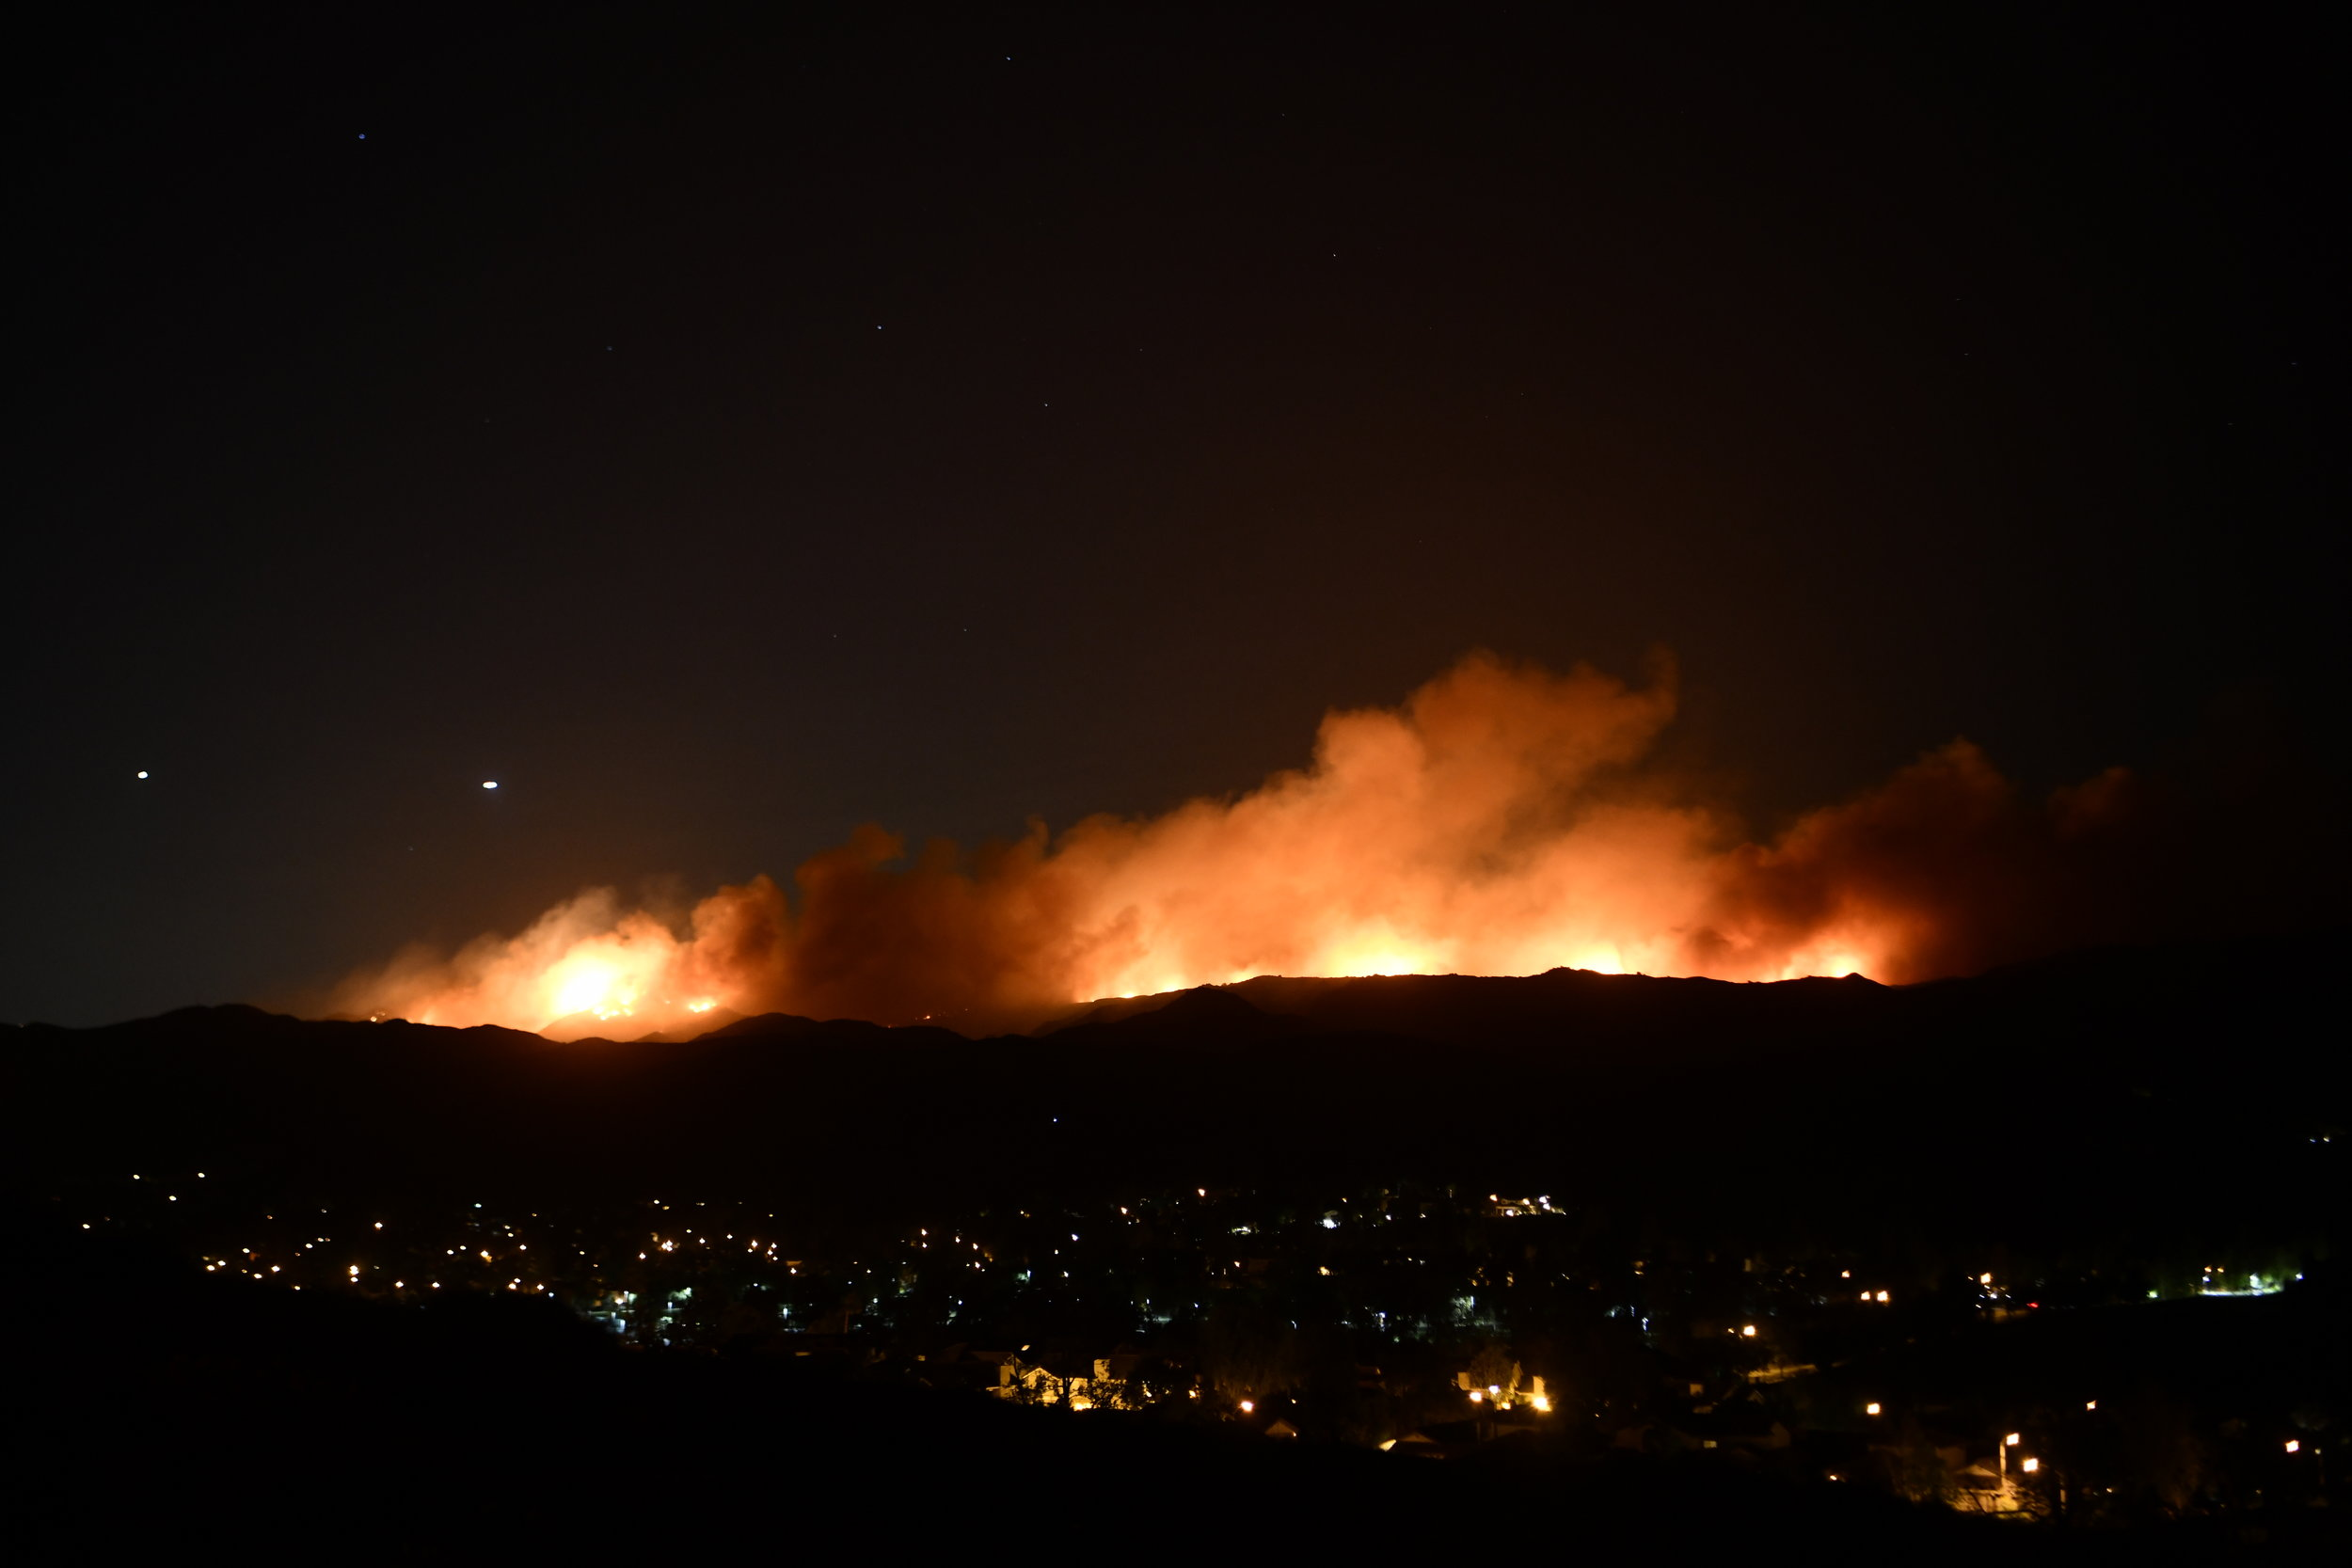 The Woolsey Fire picks up steam and moves toward Oak Park as Santa Ana Winds increase in strength late Thursday evening hours after the fire started. Looking south at the fire from Simi Valley.